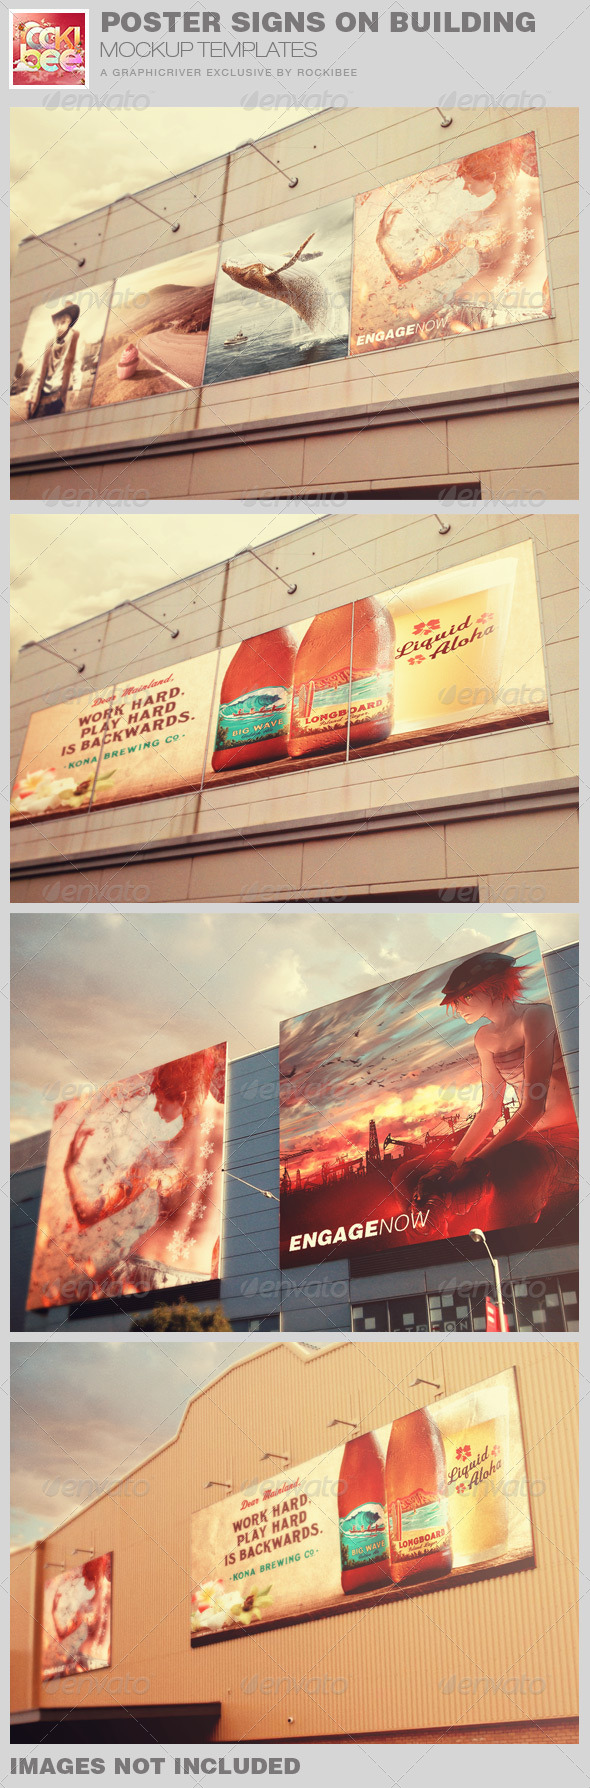 GraphicRiver Poster Signs on Building Mockup Templates 8048207